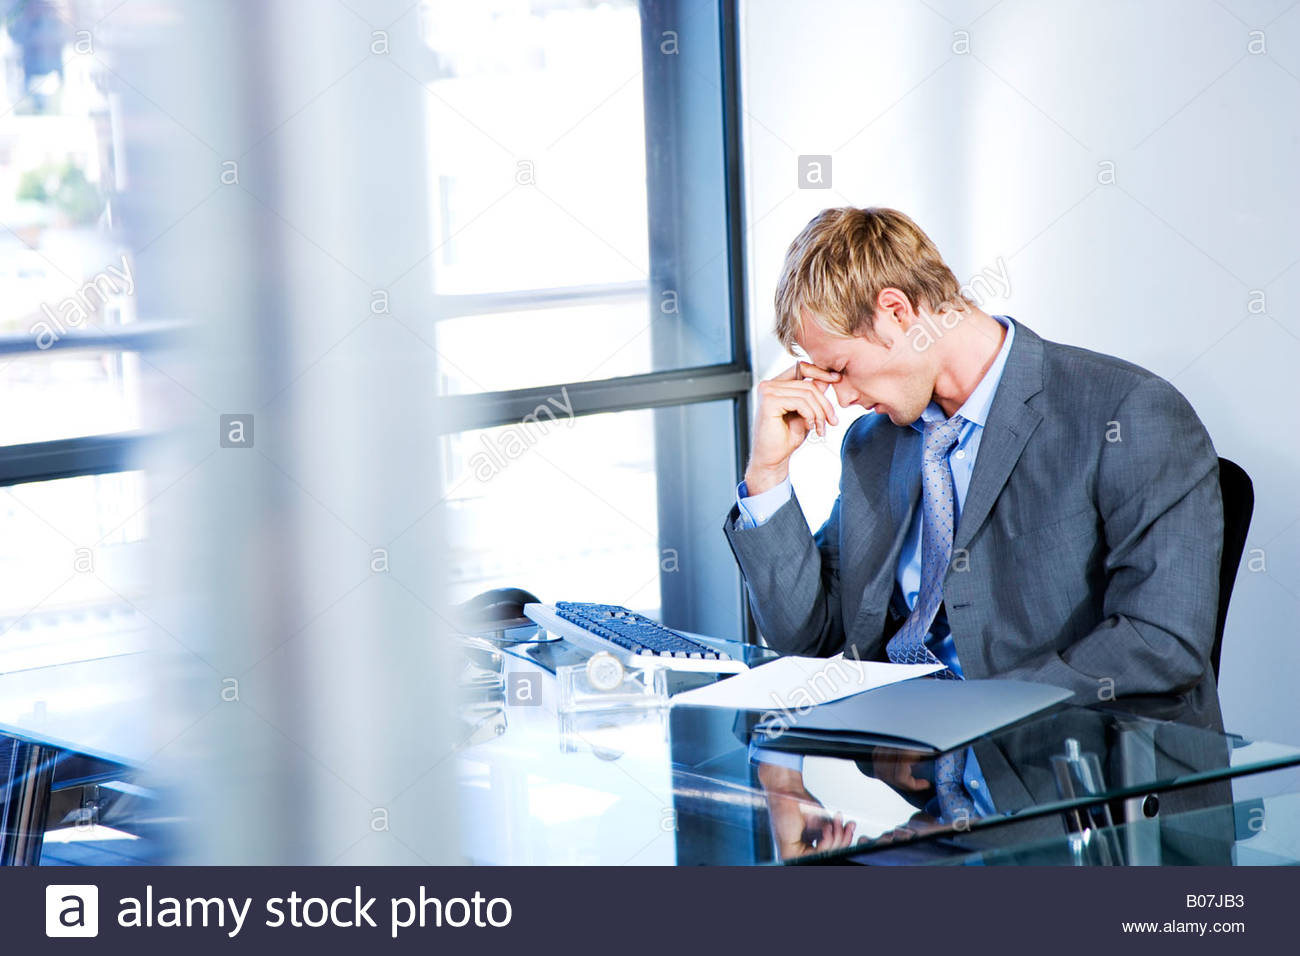 Businessman looking stressed in a modern office - Stock Image